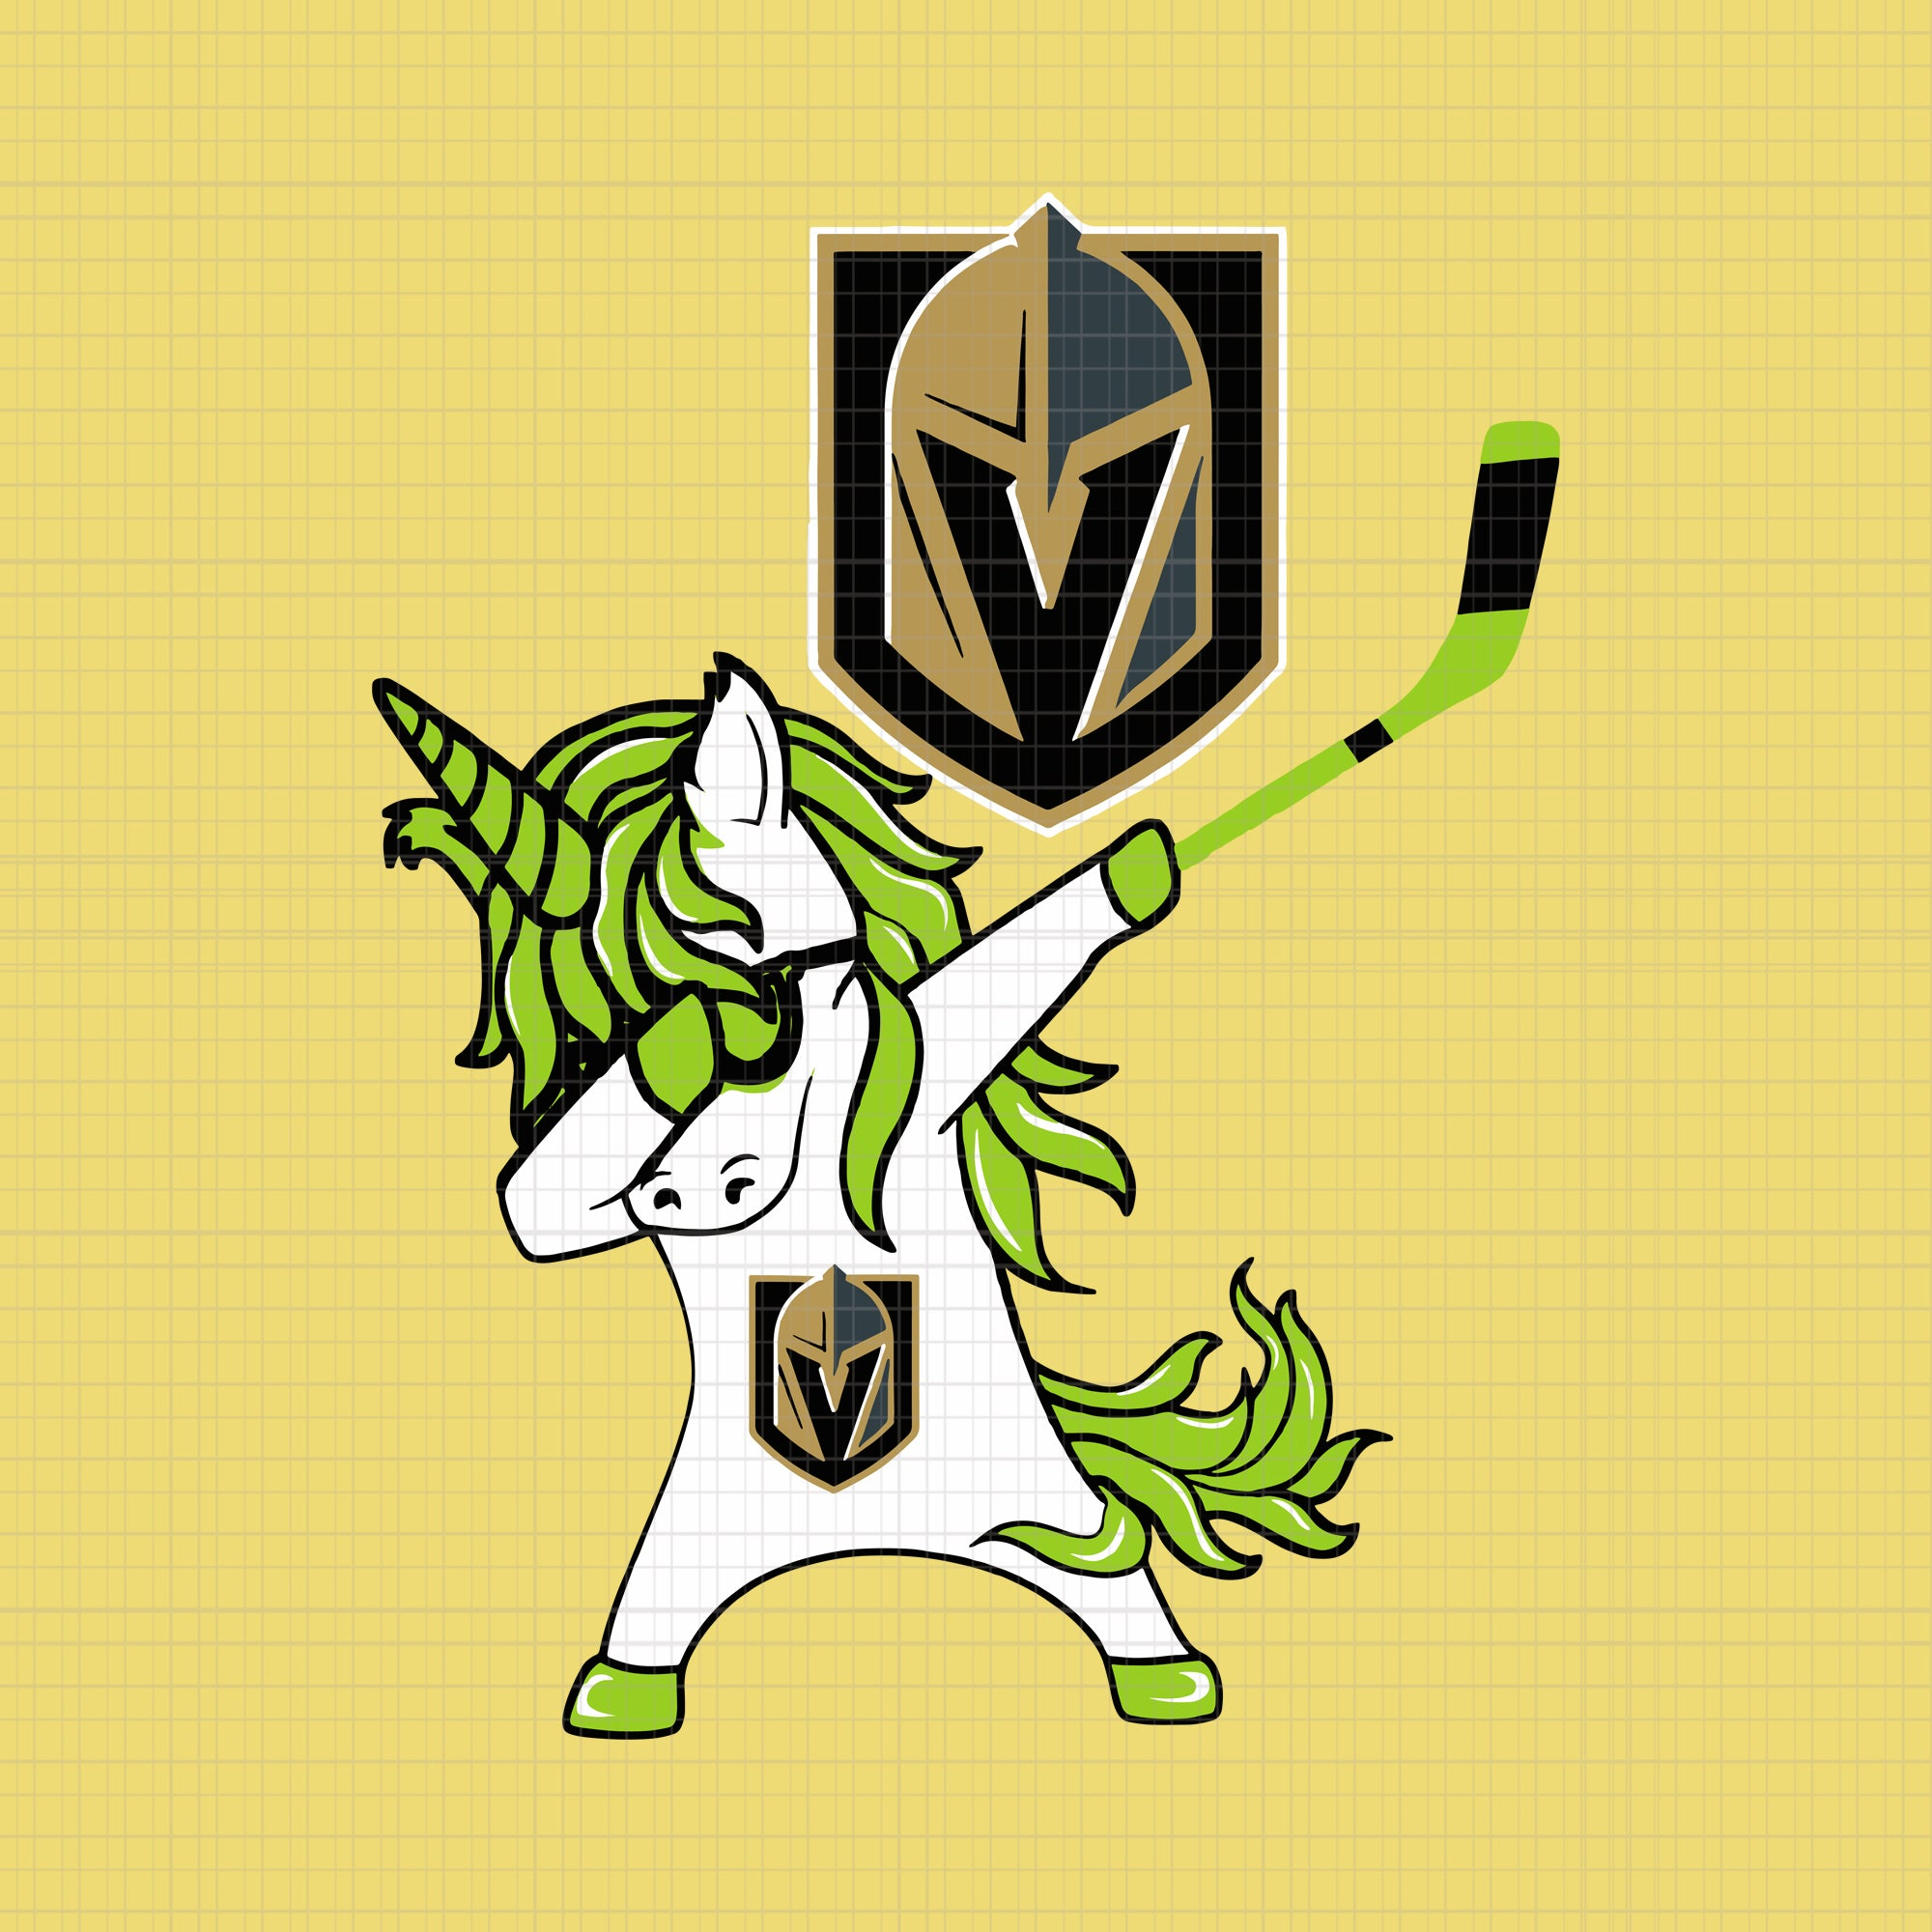 Unicorn dabbing hockey svg,unicorn dabbing hockey patrick day svg,unicorn dabbing hockey ,st patrick day dabbing unicorn, st patrick day svg, patrick day svg